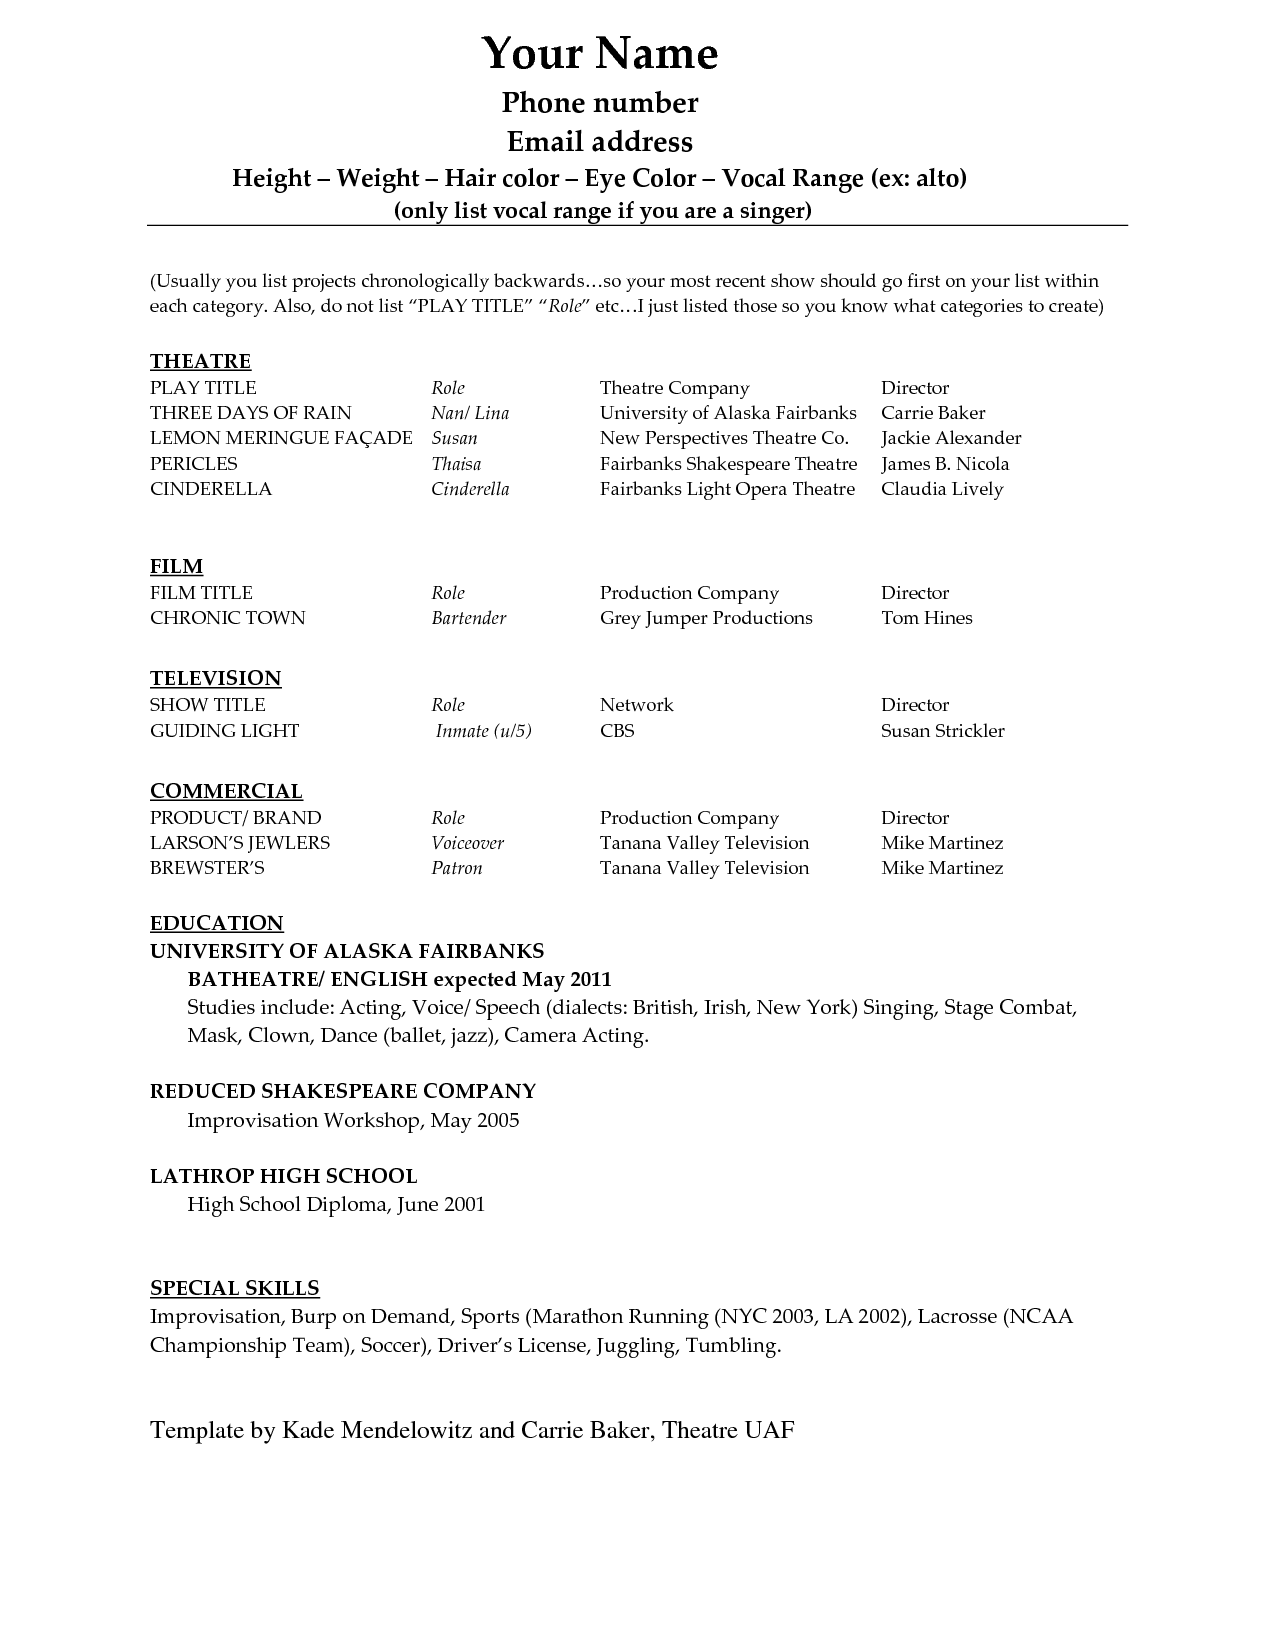 Perfect Acting Resume Template Download Free   Http://www.resumecareer.info/ Inside Microsoft Word 2010 Resume Templates